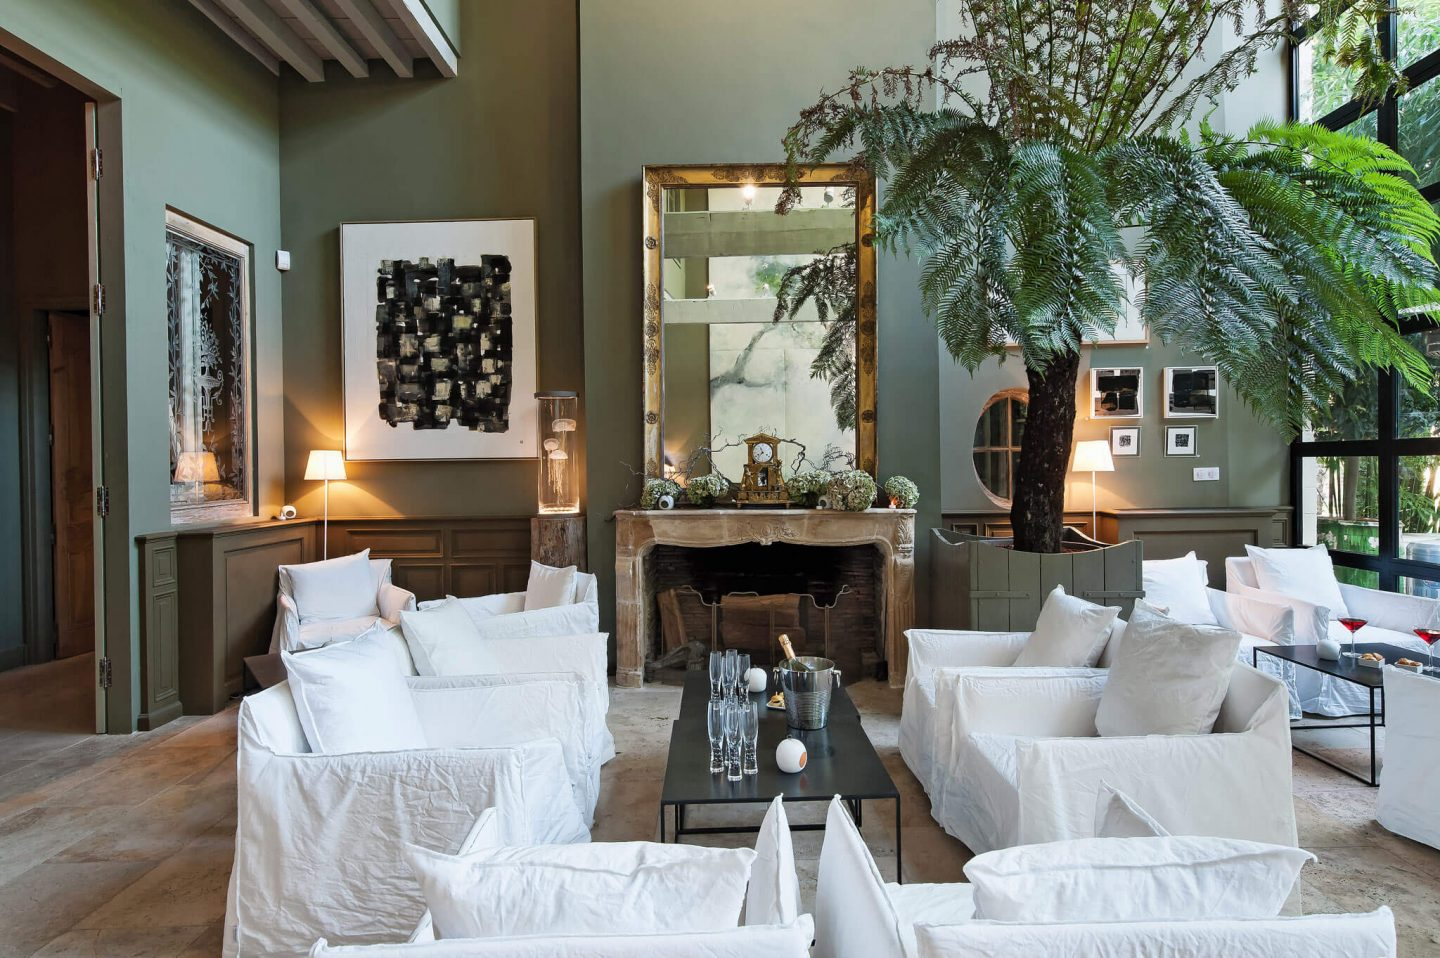 White slipcovered modern arm chairs in a deep green painted salon. Serene French Country Style interior design inspiration. The Serenity Suite at Avignon Hôtel Particulier. Luxurious and timeless restored 19th century French chateau in the South of France. Provencal romance, traditional architecture, modern French design, unique art, and European antiques. Photo: Haven In.